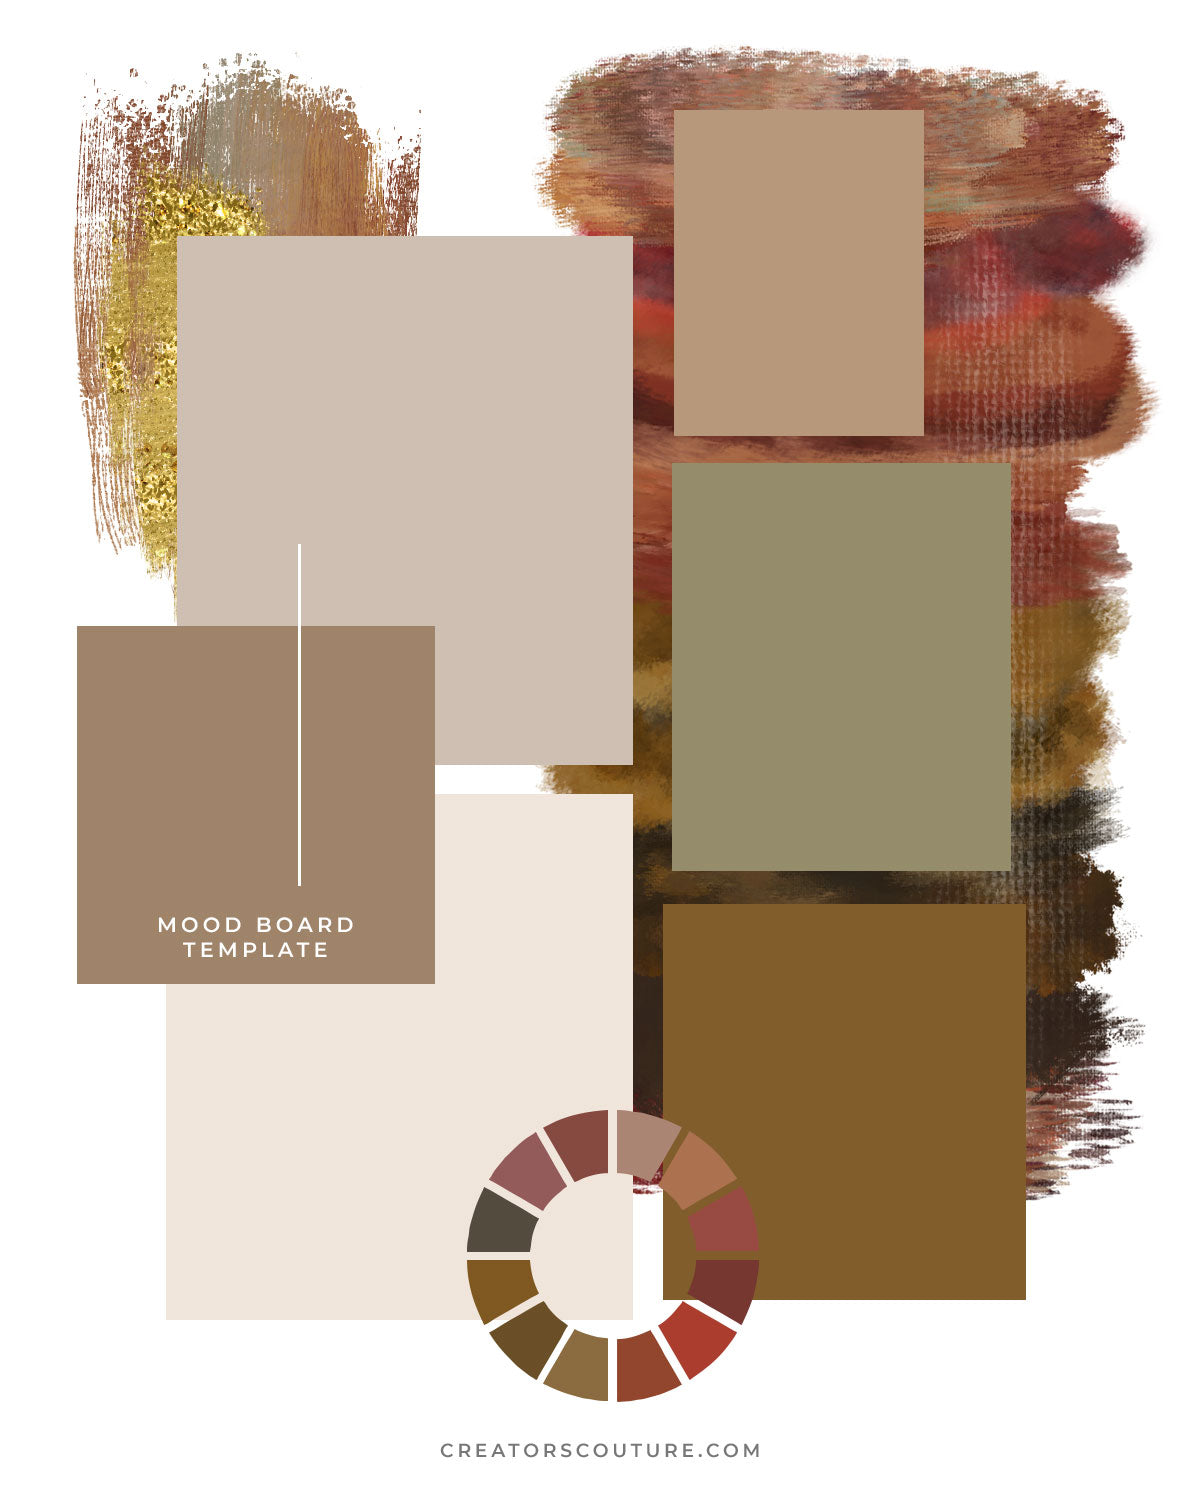 mood board template inspired by Dior color palette - download